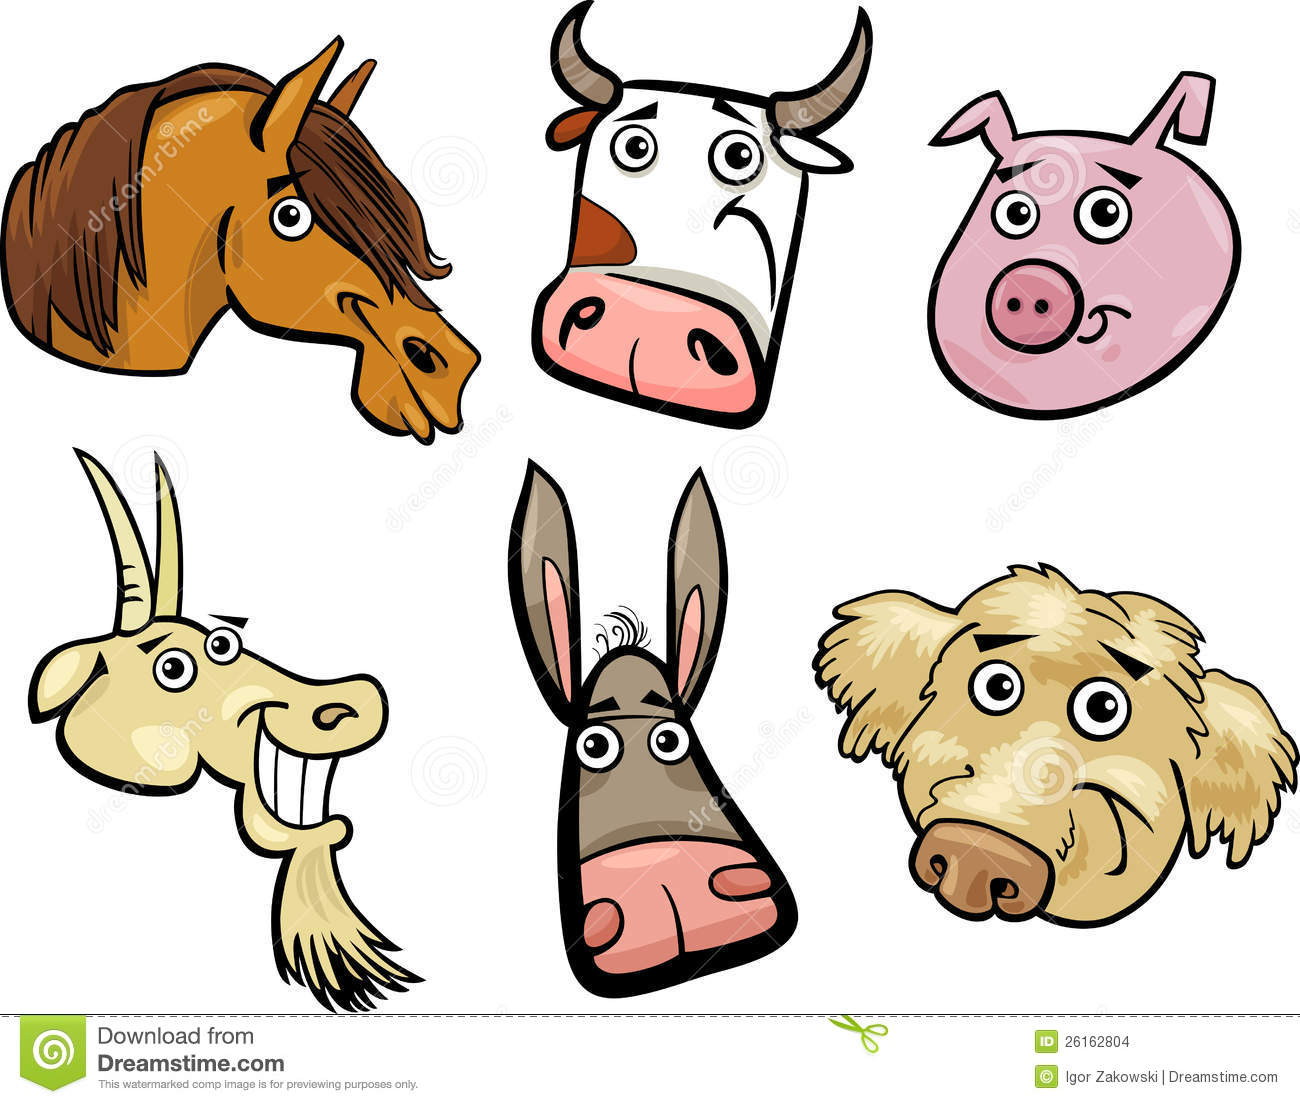 Cartoon dog stock photos images amp pictures shutterstock - Cow Dog